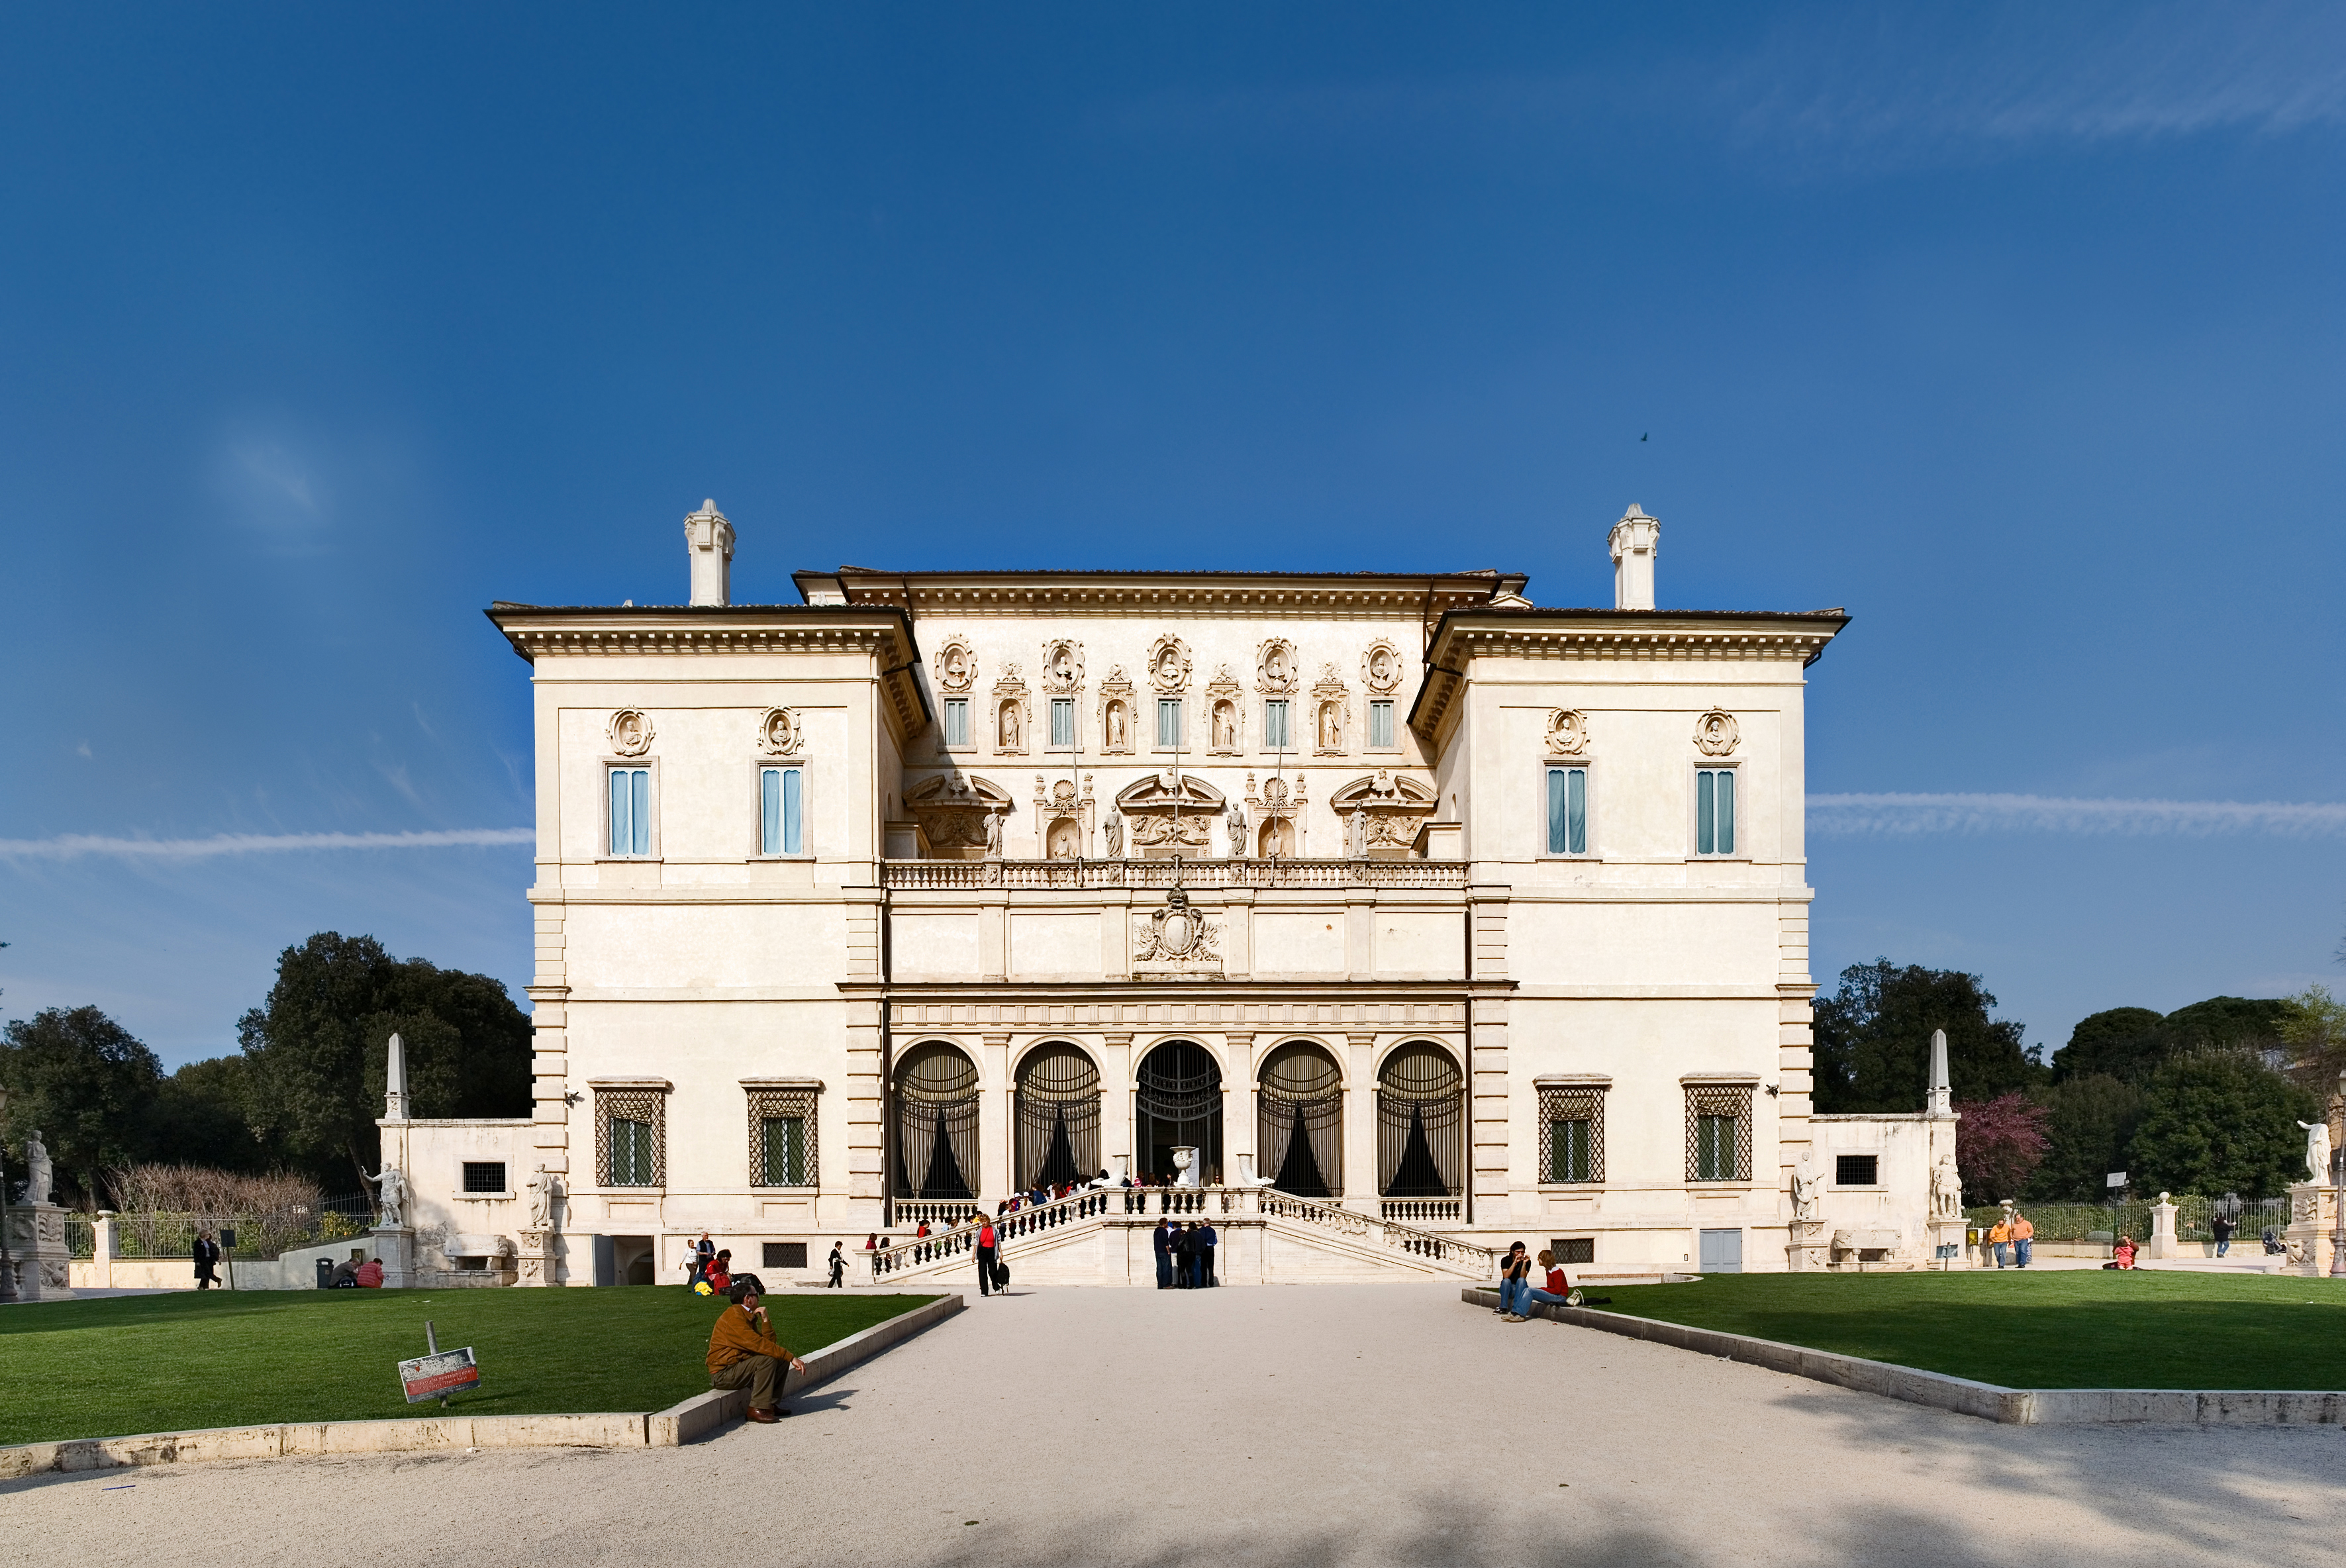 The Borghese Gallery, one of the Rome museums that will now be closed on Sundays and holidays